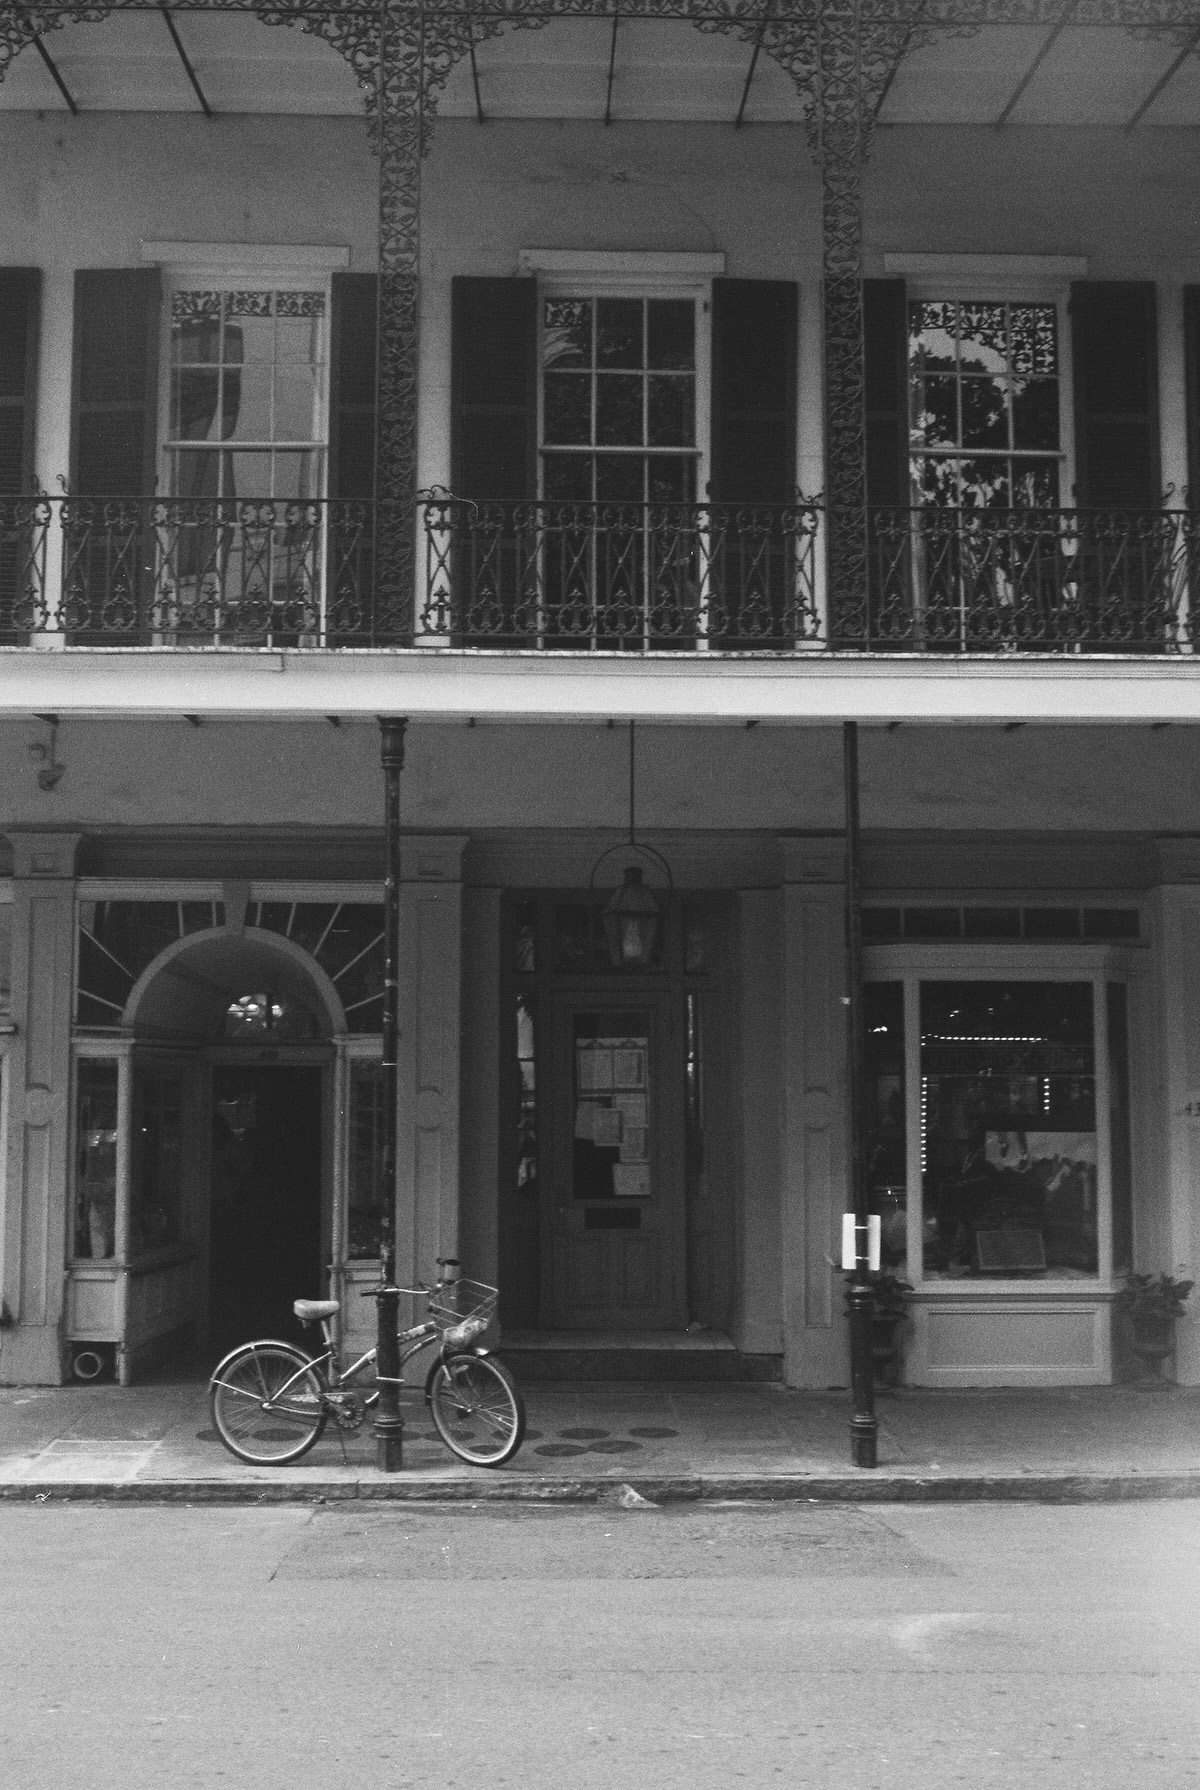 New-Orleans-Louisiana-black-and-white-fine-art-photography-by-Studio-L-photographer-Laura-Schneider-_017018